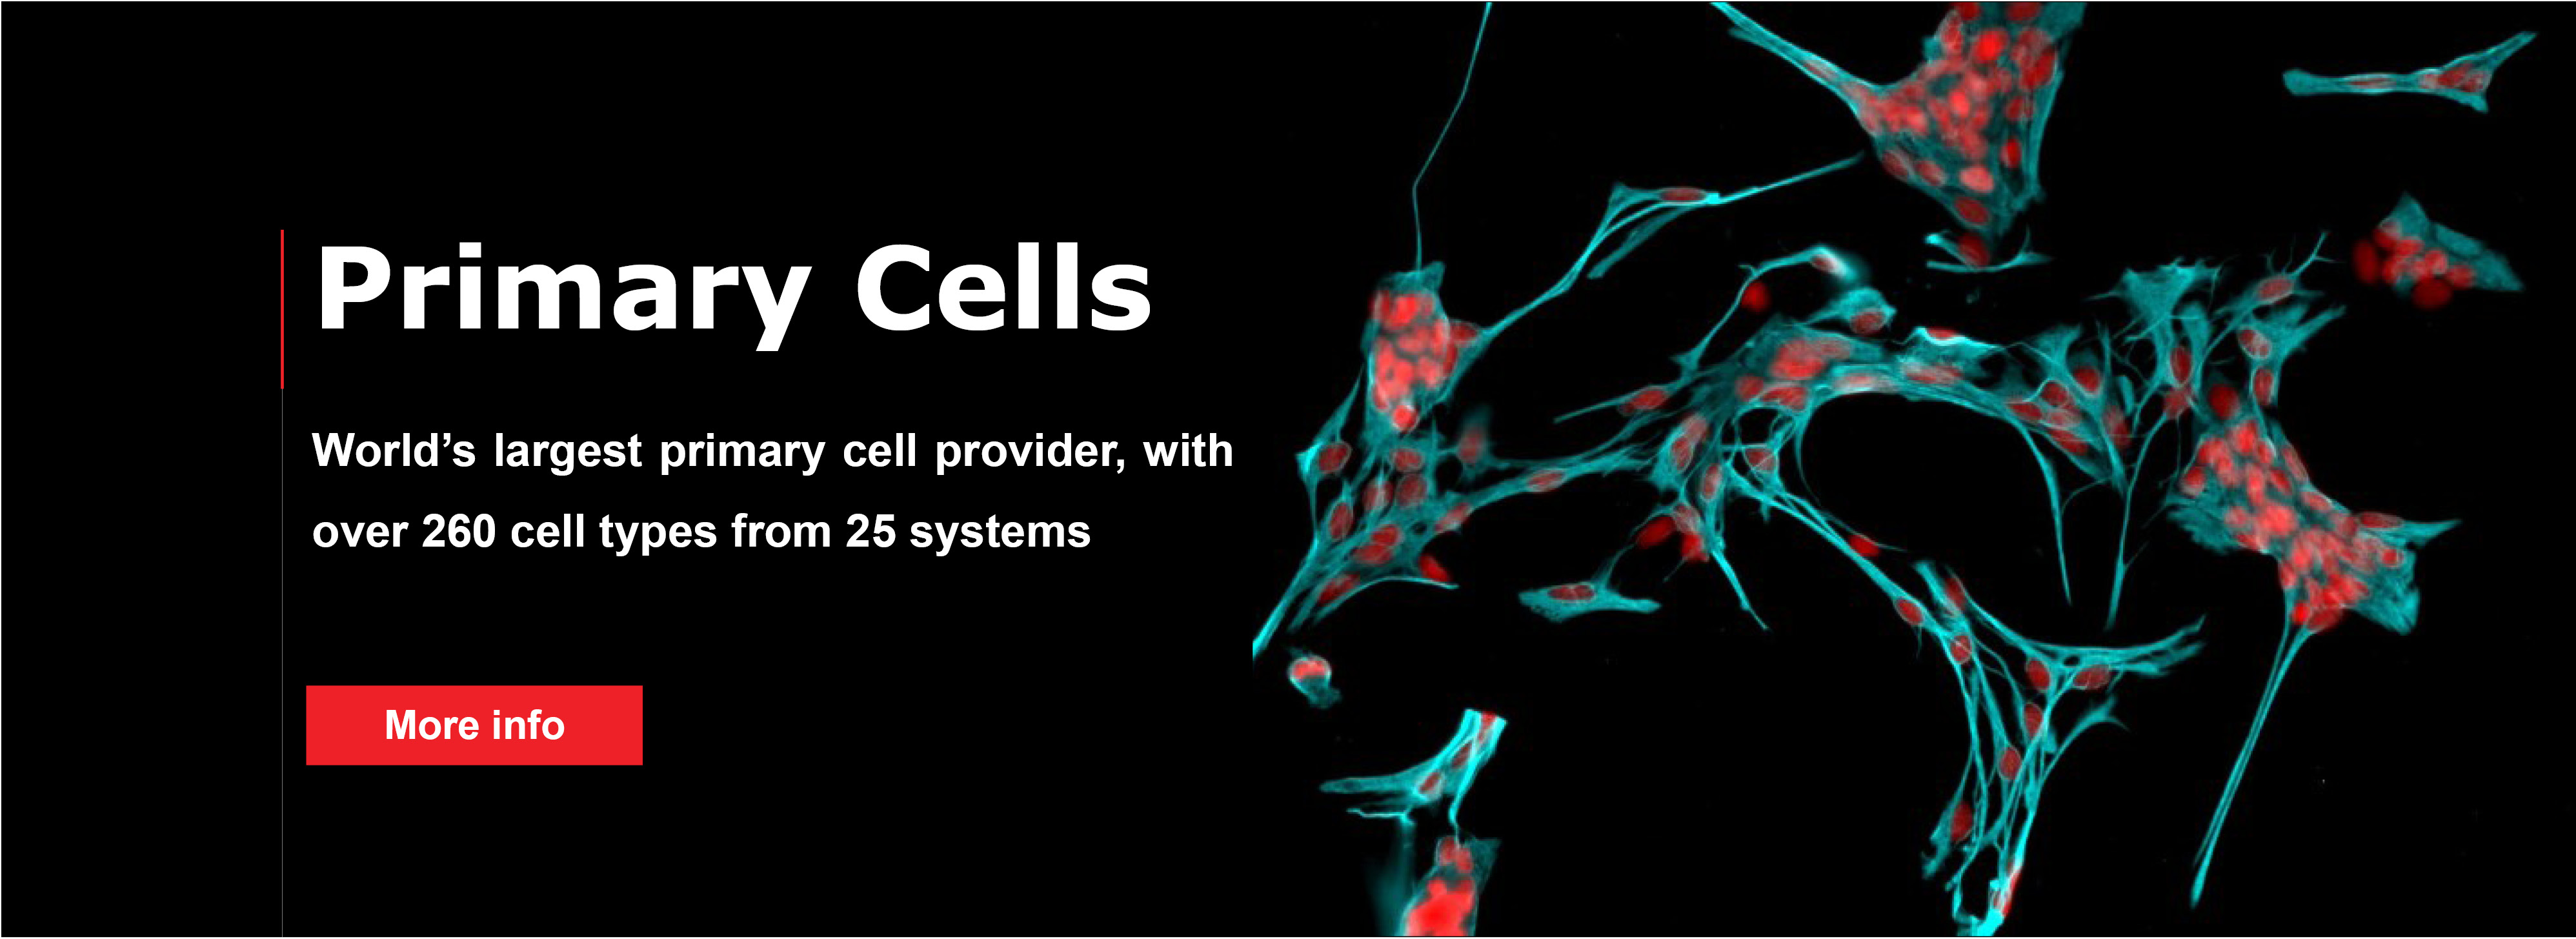 primary cells Primary cells differ from immortalized cell lines by limited population doubling without genetic and chemical modifications, primary cells retain many of the important physiological properties of their origin tissue systems and closely mimic the in vivo conditions.